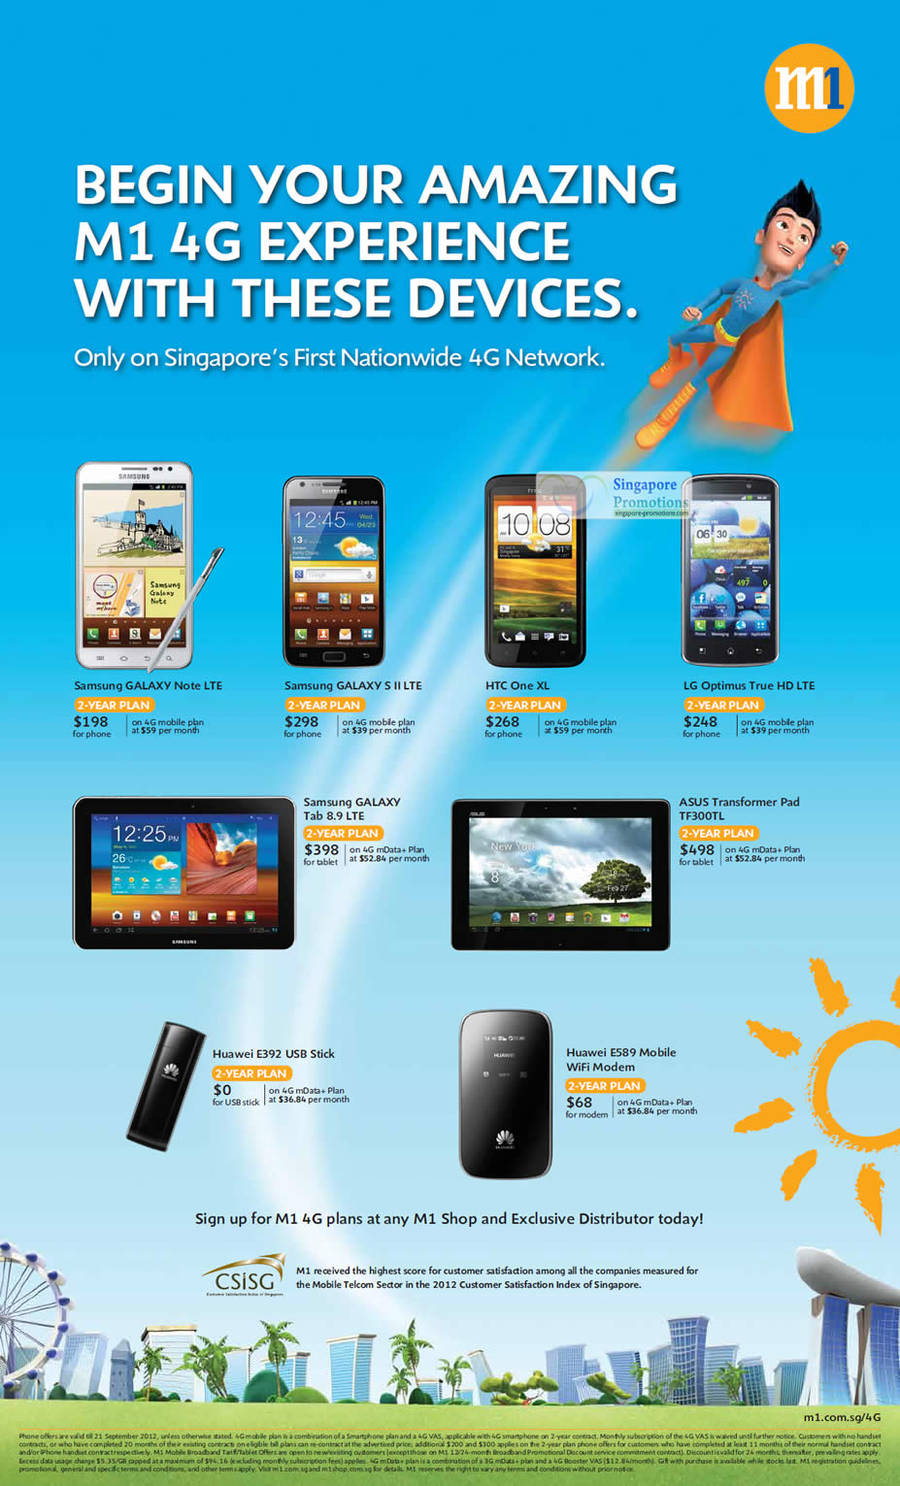 Samsung Galaxy Note LTE, Samsung Galaxy S II LTE, Samsung Galaxy Tab 8.9 LTE, HTC One XL, LG Optimus True HD LTE, ASUS Transformer Pad TF300TL